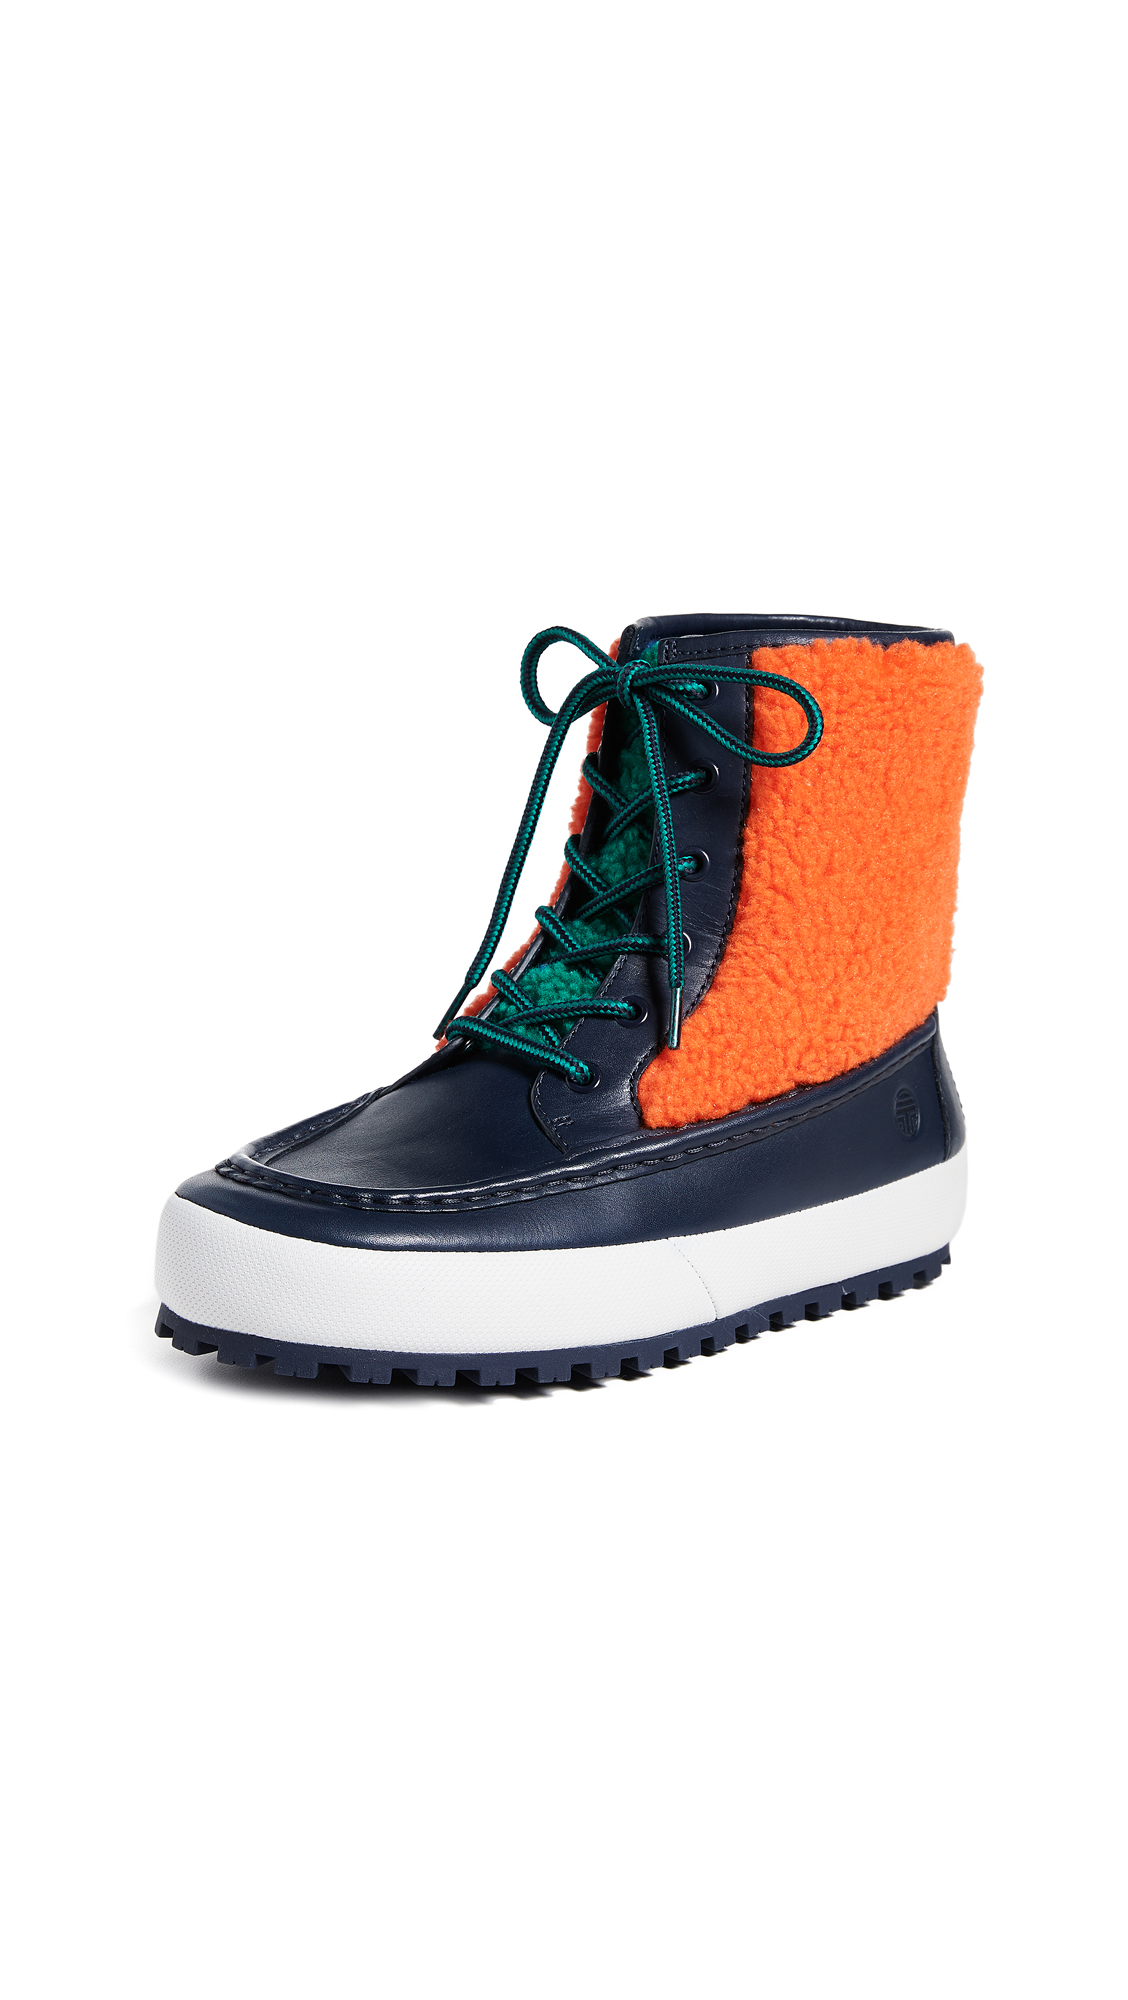 Tory Sport Moccasin Boots - Bright Navy/Multi